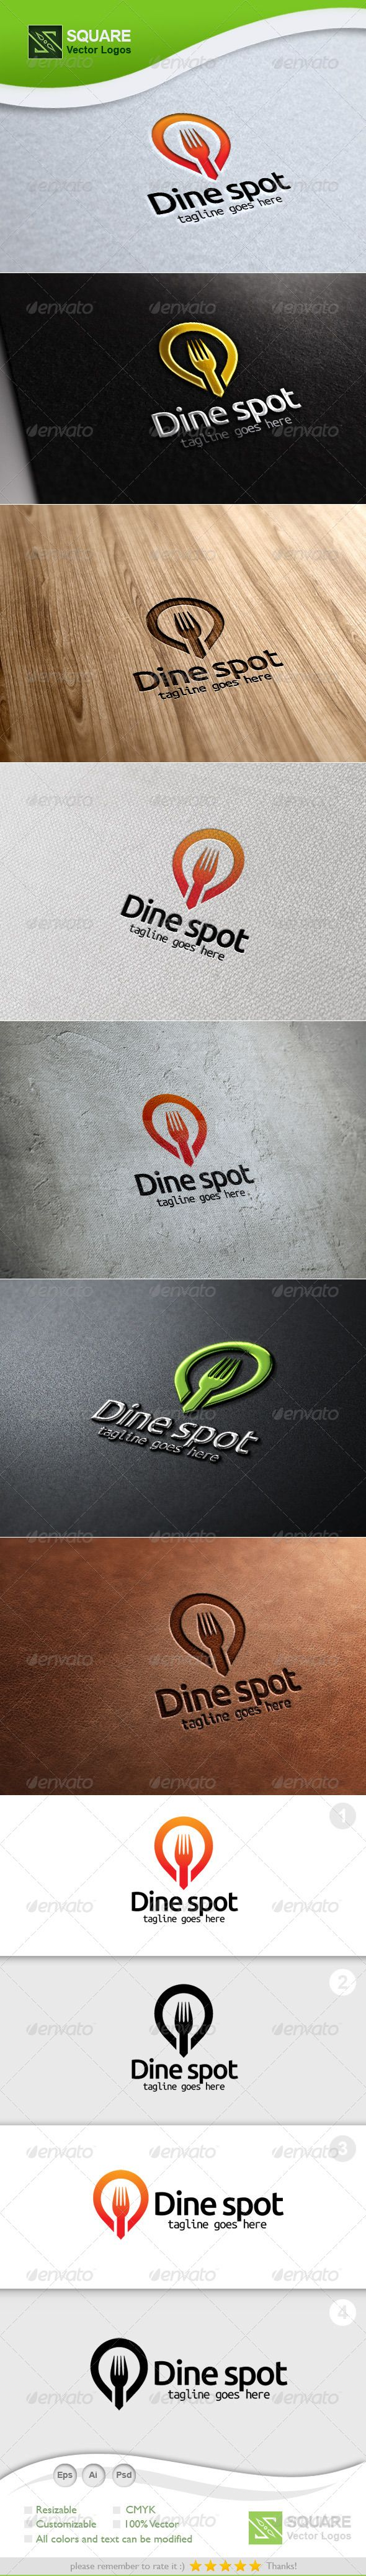 Fork, Locator Vector Logo Template #GraphicRiver File Description This is custom logo template. Illustrator (AI), Photoshop (PSD), Vector (EPS) logo files included in this download. You can customize to your own branding. All colors and text can be modified. It is suitable for food, business, fork, feast, locator, location, spot, pin, map, symbol, noodles, hotel, dinner, meal, restaurant related logos. FEATURES The Logo Is 100% Vector 100% Customizable Fully Layered Logo Template CMYK…